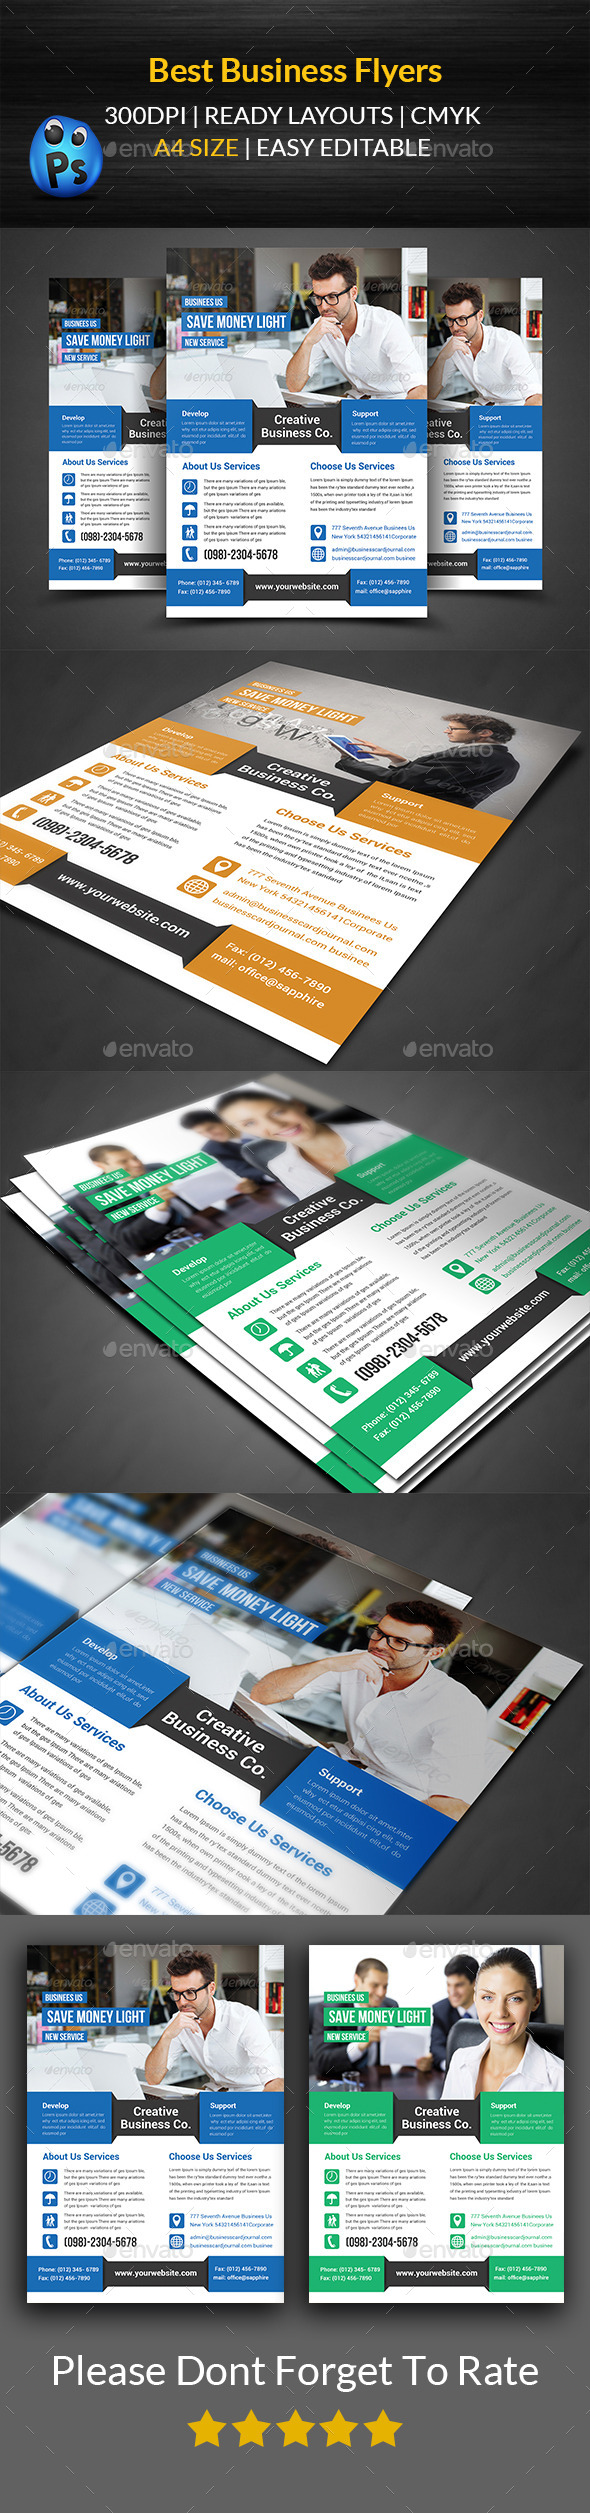 GraphicRiver Best Business Flyers Templates 11860078